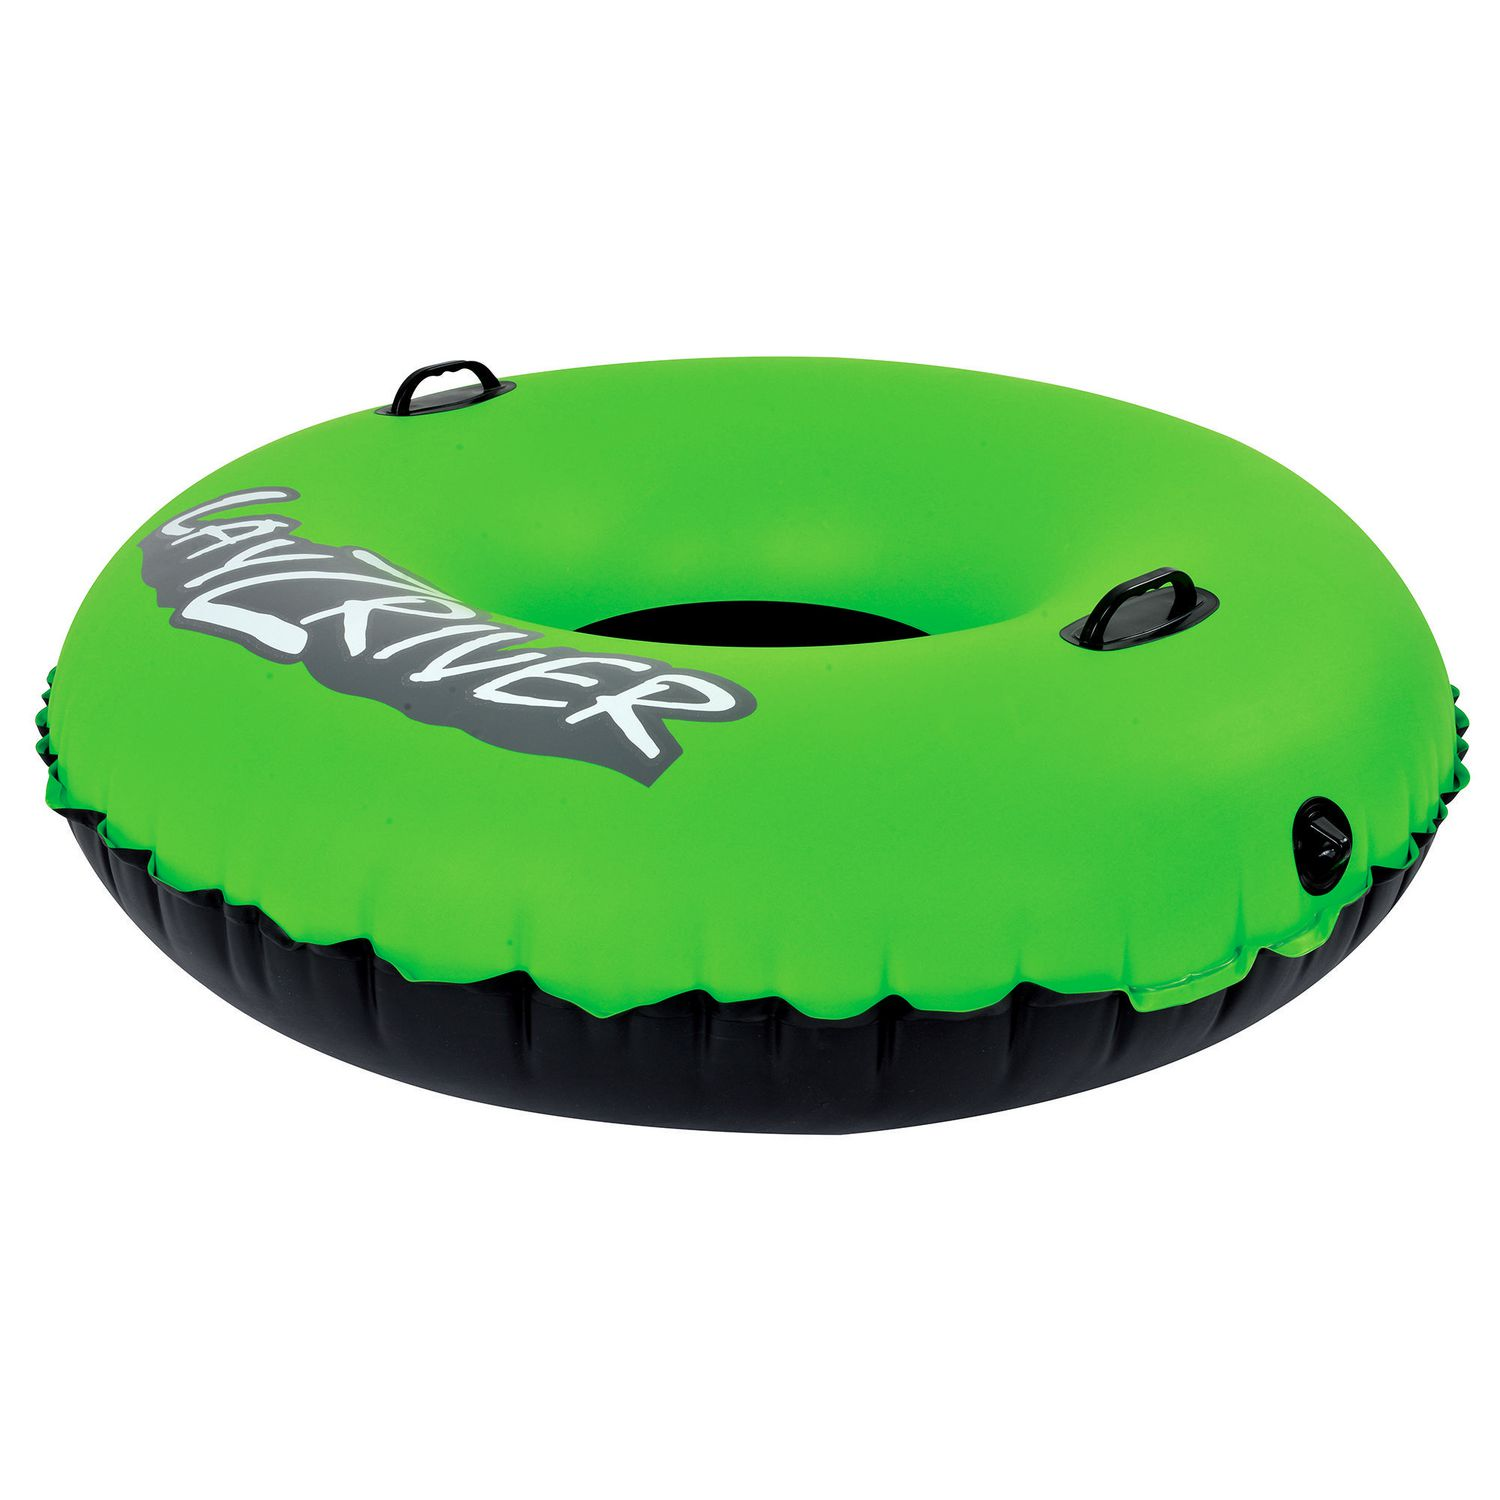 Blue Wave Sports Lay-Z-River 47-in Inflatable River Float Tube | Walmart Canada  sc 1 st  Walmart Canada & Blue Wave Sports Lay-Z-River 47-in Inflatable River Float Tube ...